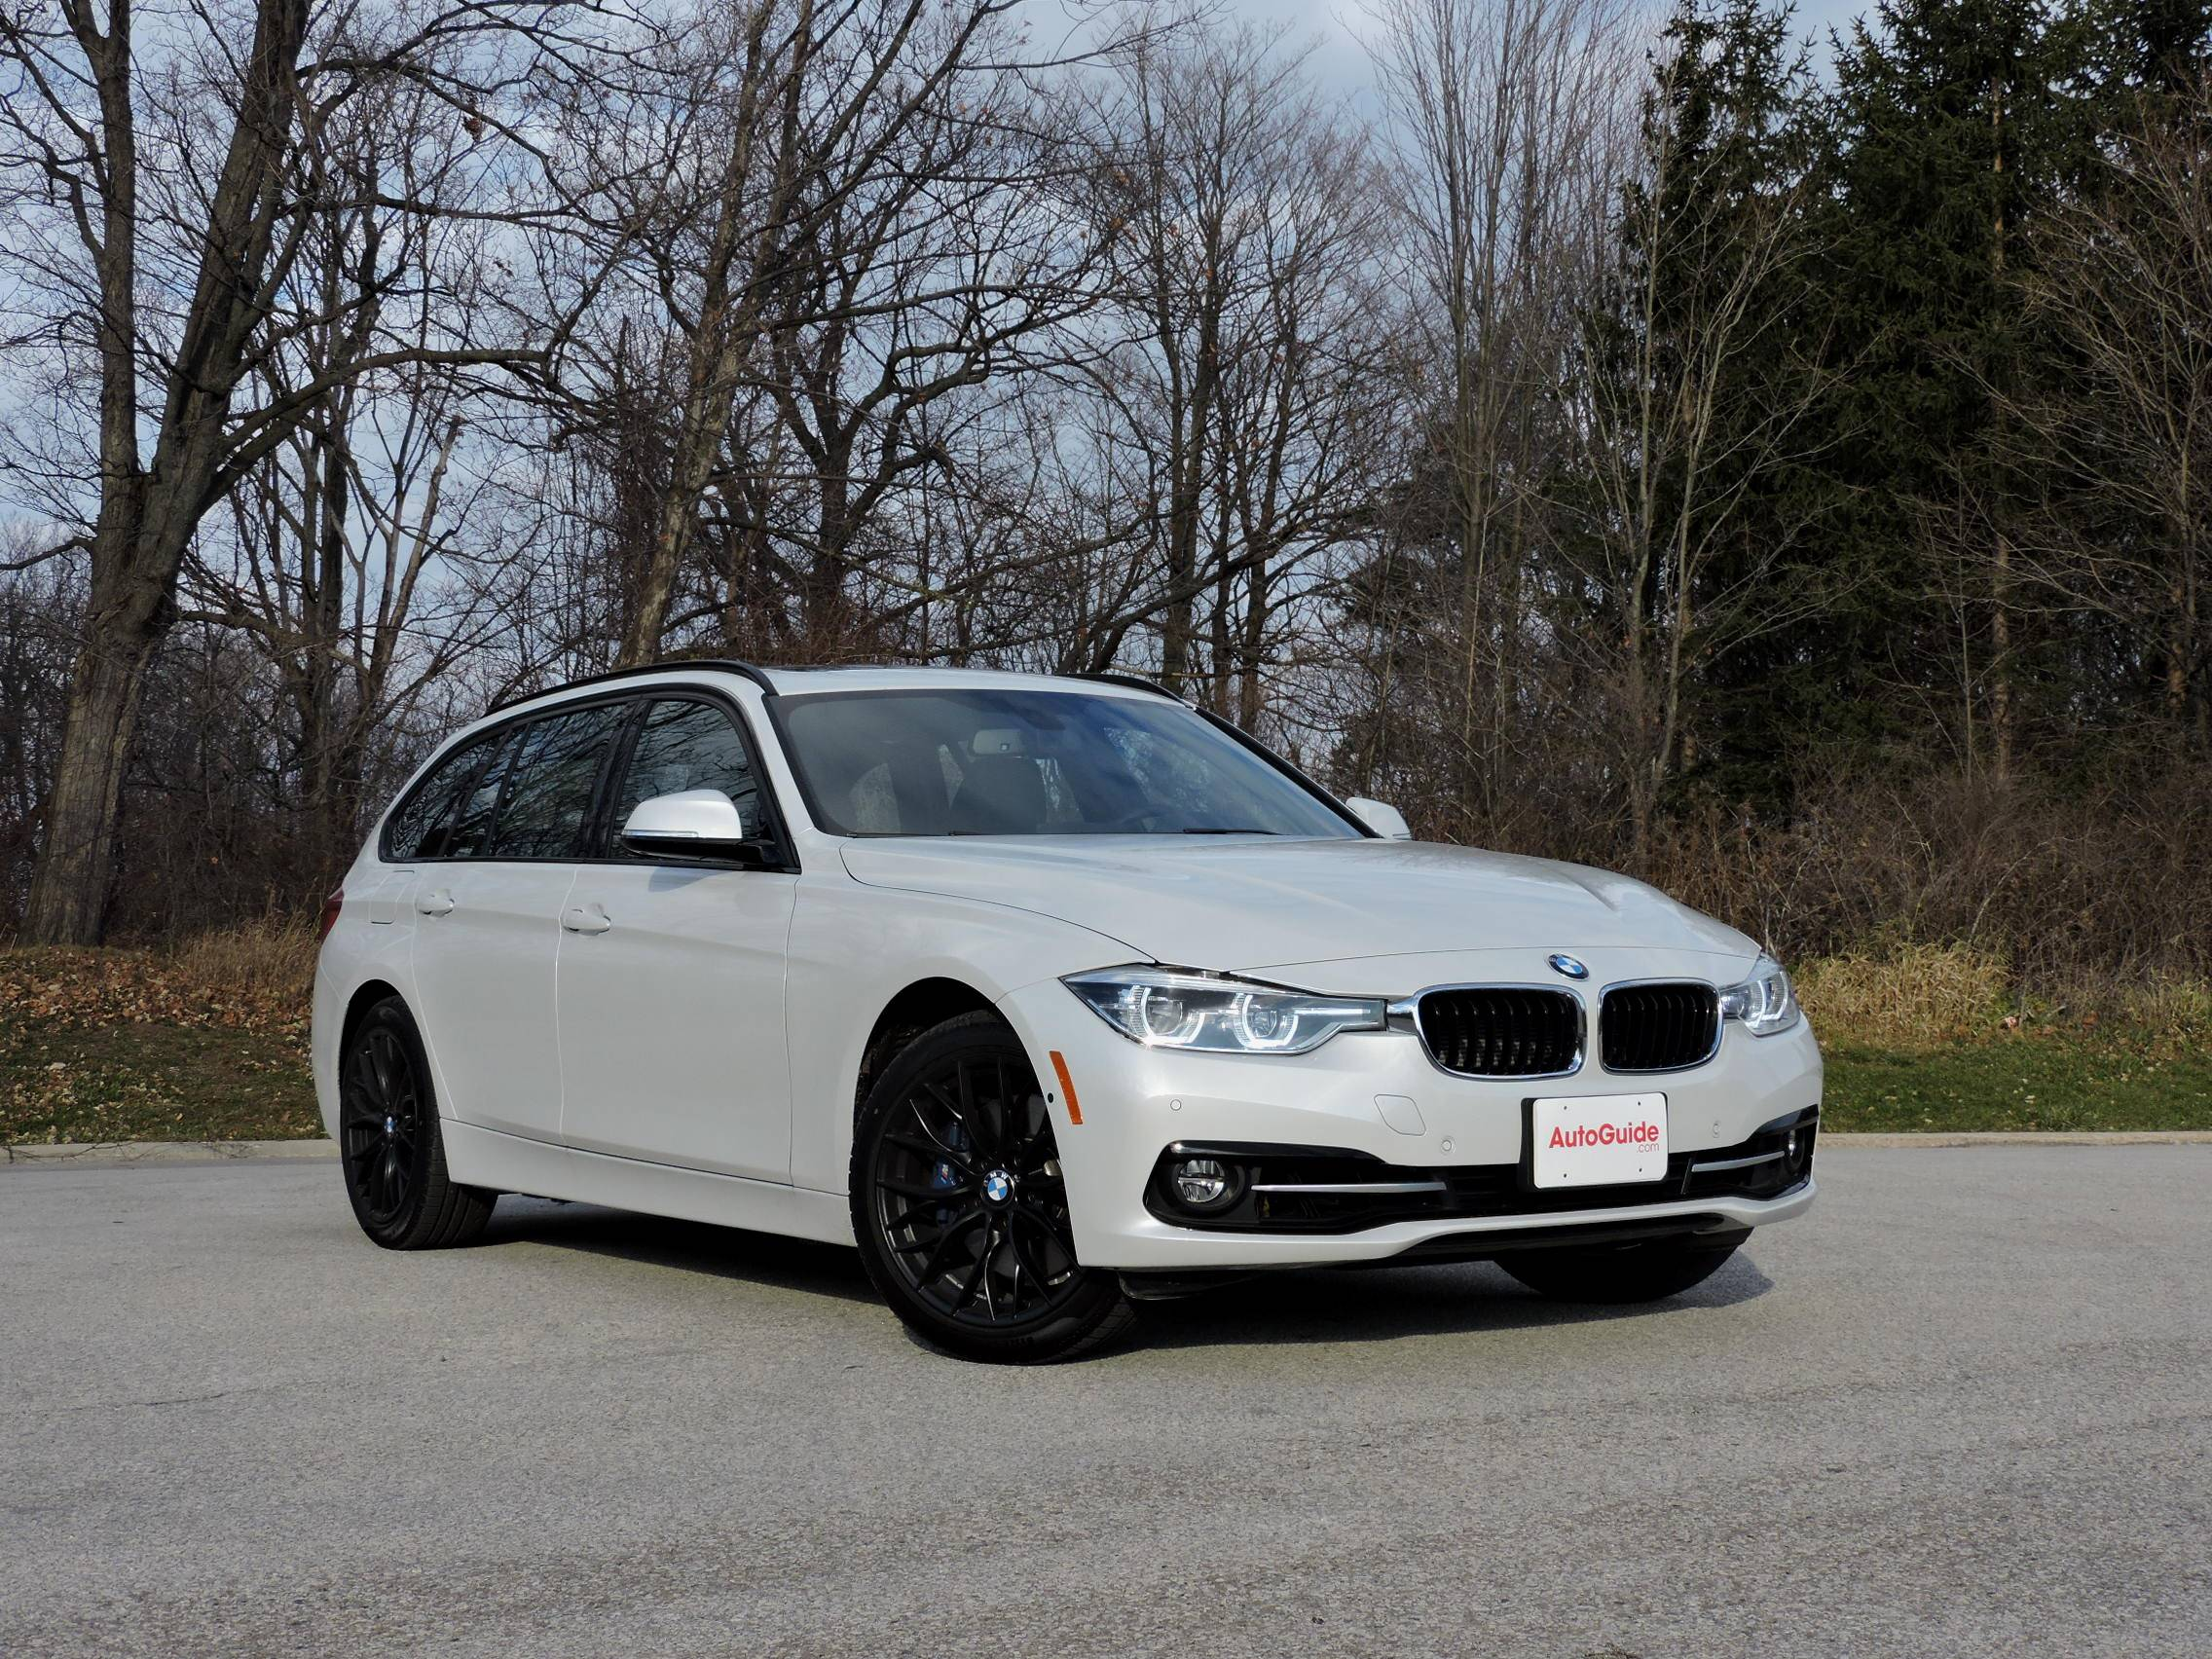 2016 Bmw 328i Xdrive Sports Wagon Review Autoguide Com